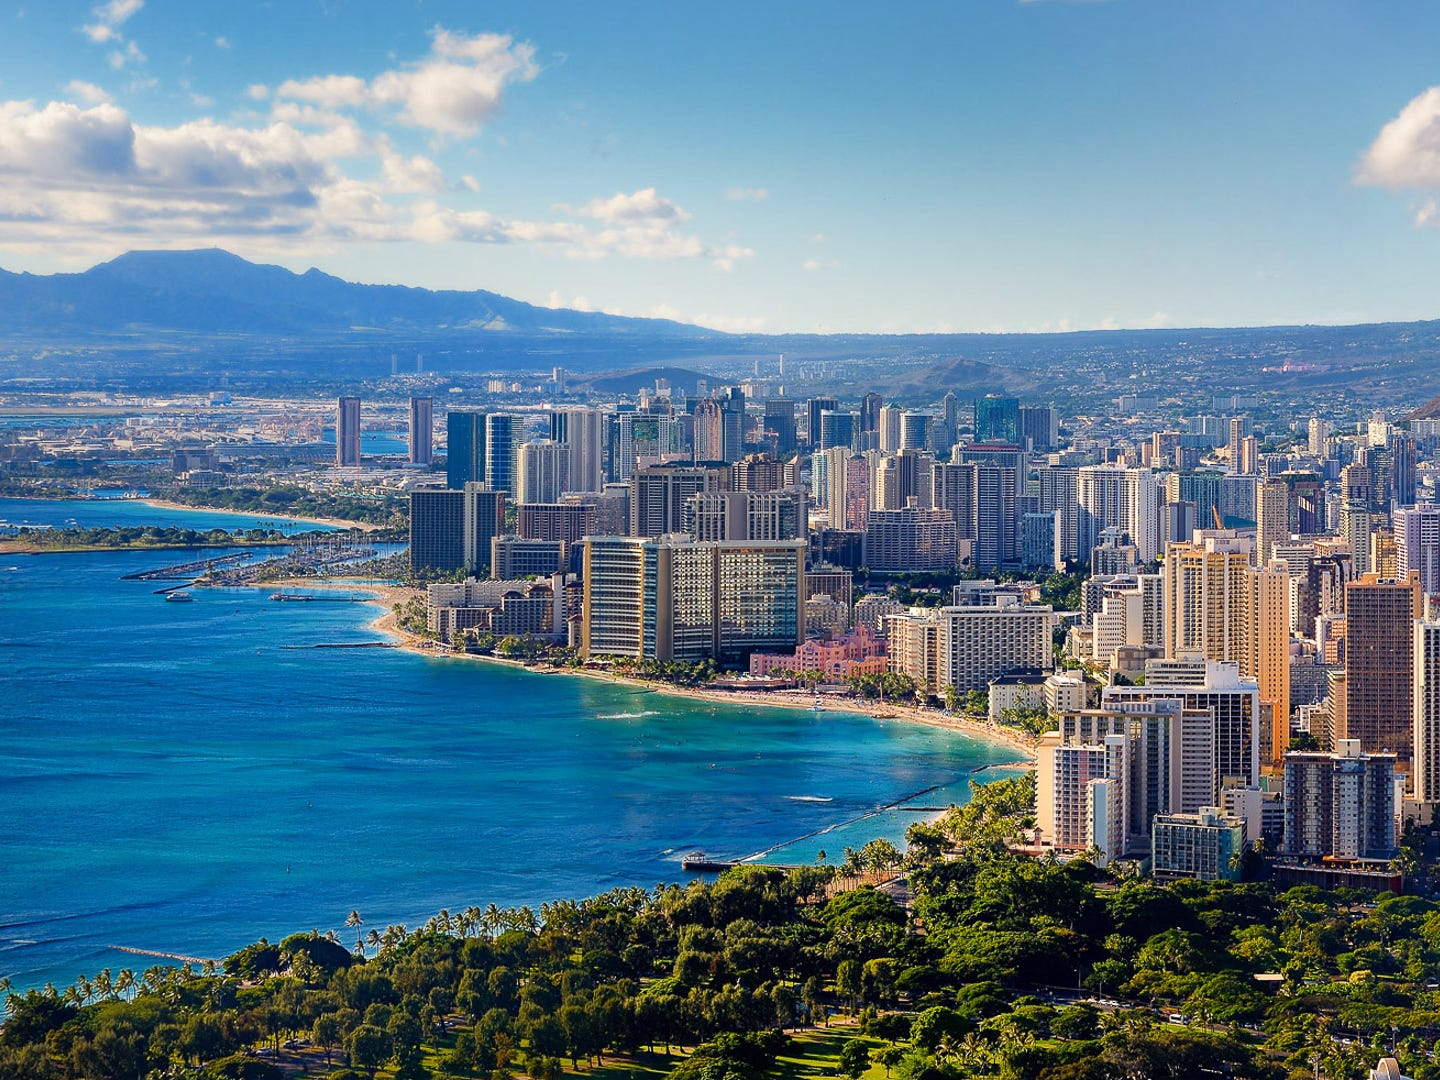 No. 1: Honolulu. Thanksgiving trip cost: $2,262.50. Christmas trip cost: $2,958.50. Winter in Honolulu is the peak tourist season, making it one of the least affordable places to visit during the holidays. During Thanksgiving, hotels are more expensive in Honolulu compared to any other destination included in this study — and, prices are the third-highest during Christmas. Round-trip flights are the most expensive overall during Thanksgiving, where the average cost is $1,076.50.